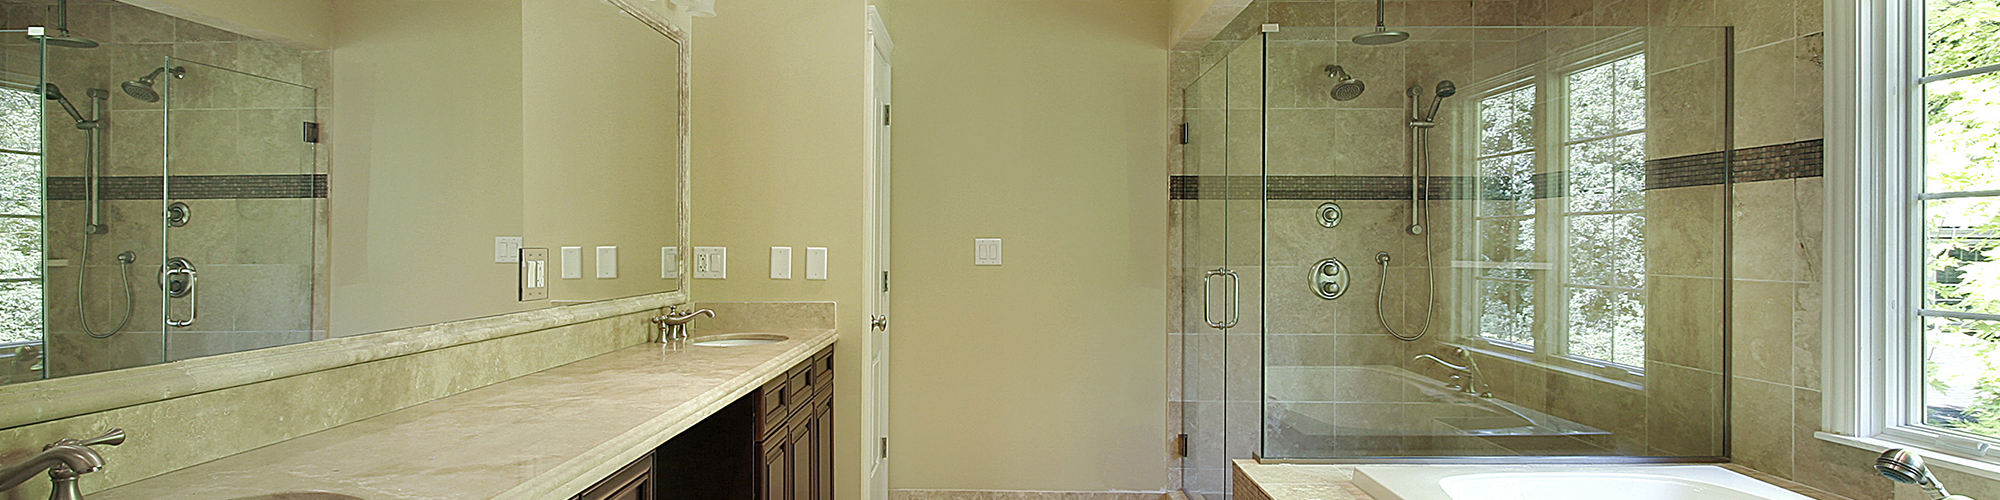 Frameless Shower Doors In Orlando, FL